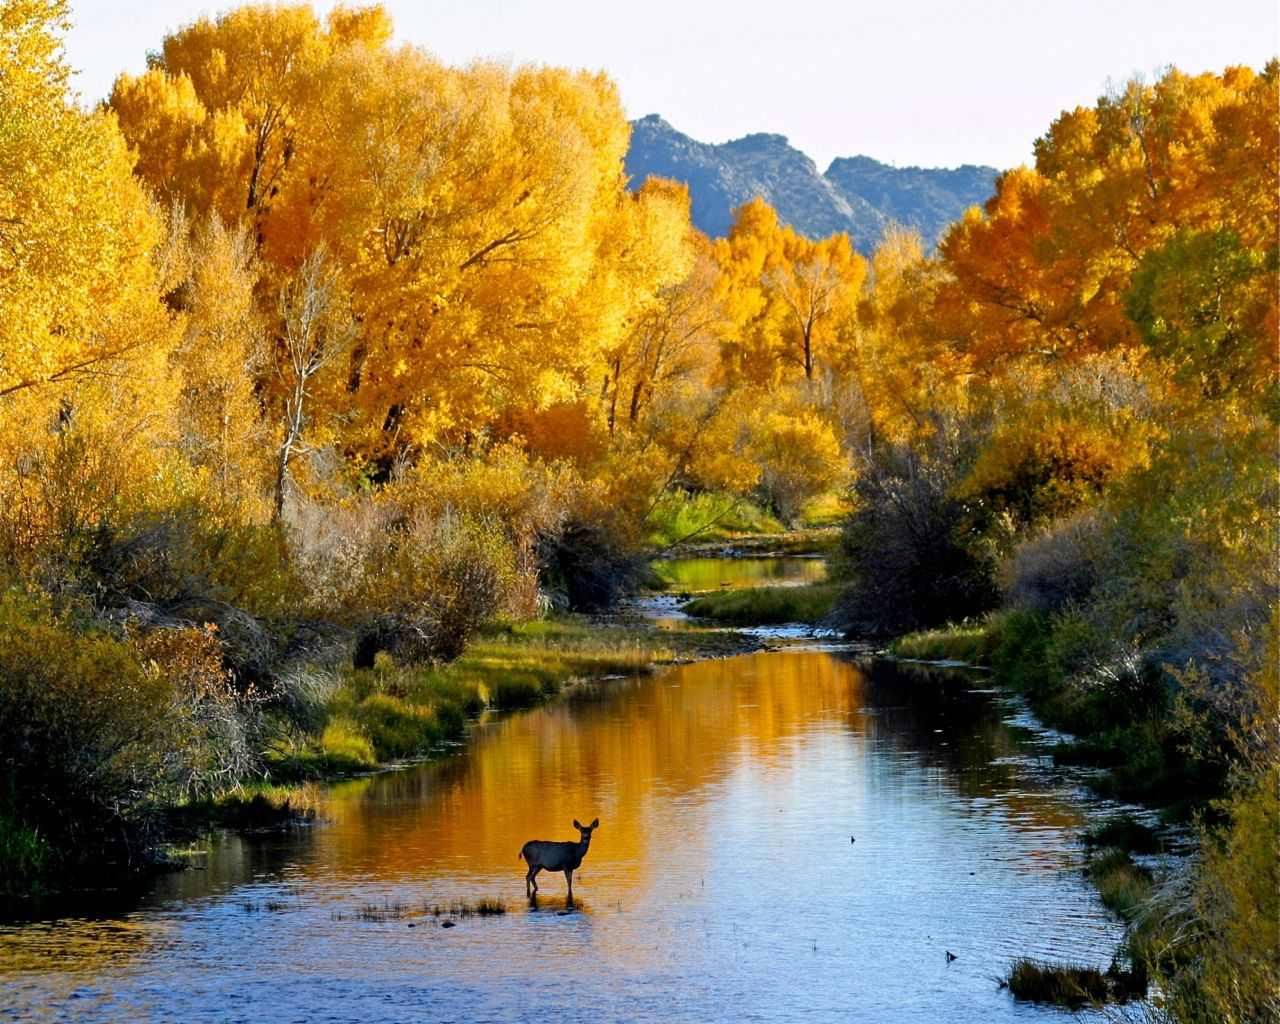 Mule deer posing in the river in autumn. Located in Carbon